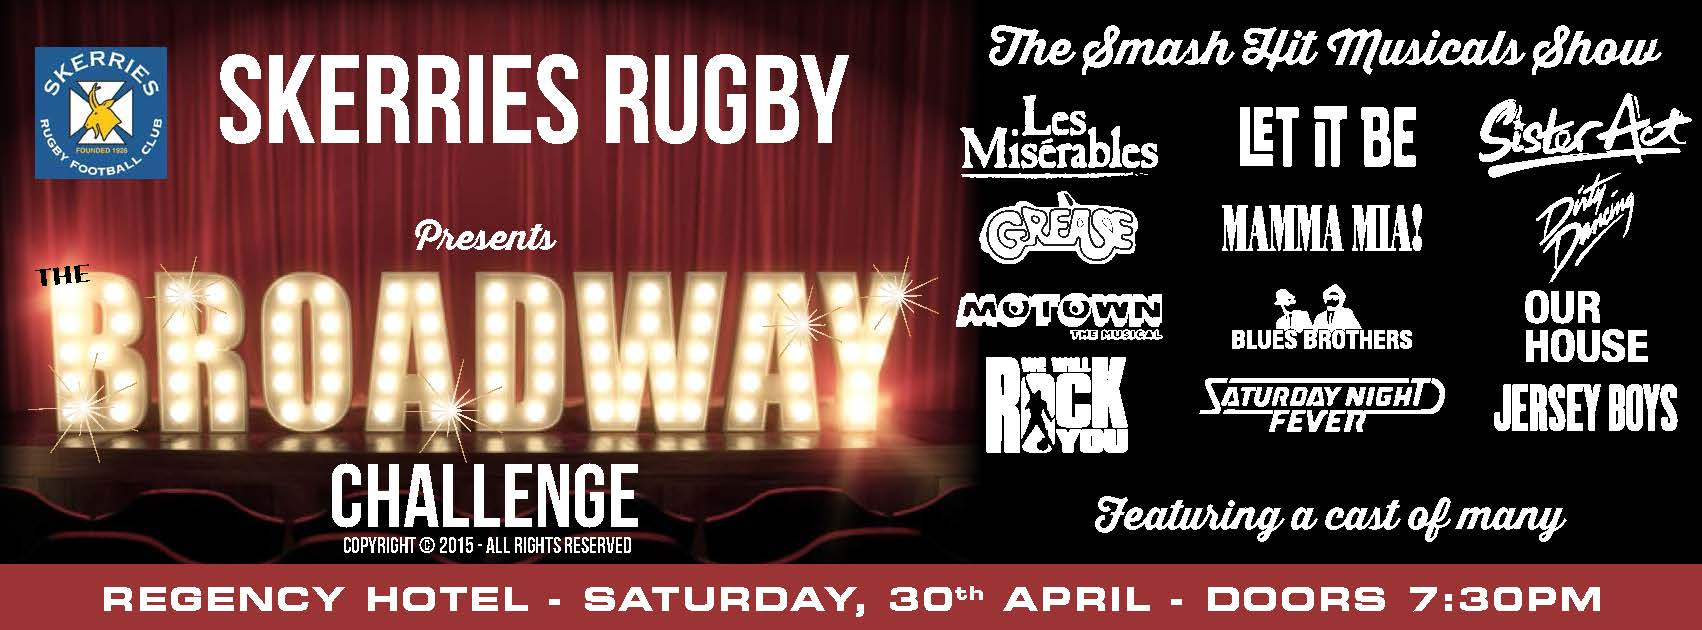 Broadway Challenge Skerries Rugby  Facebook Banner (1)